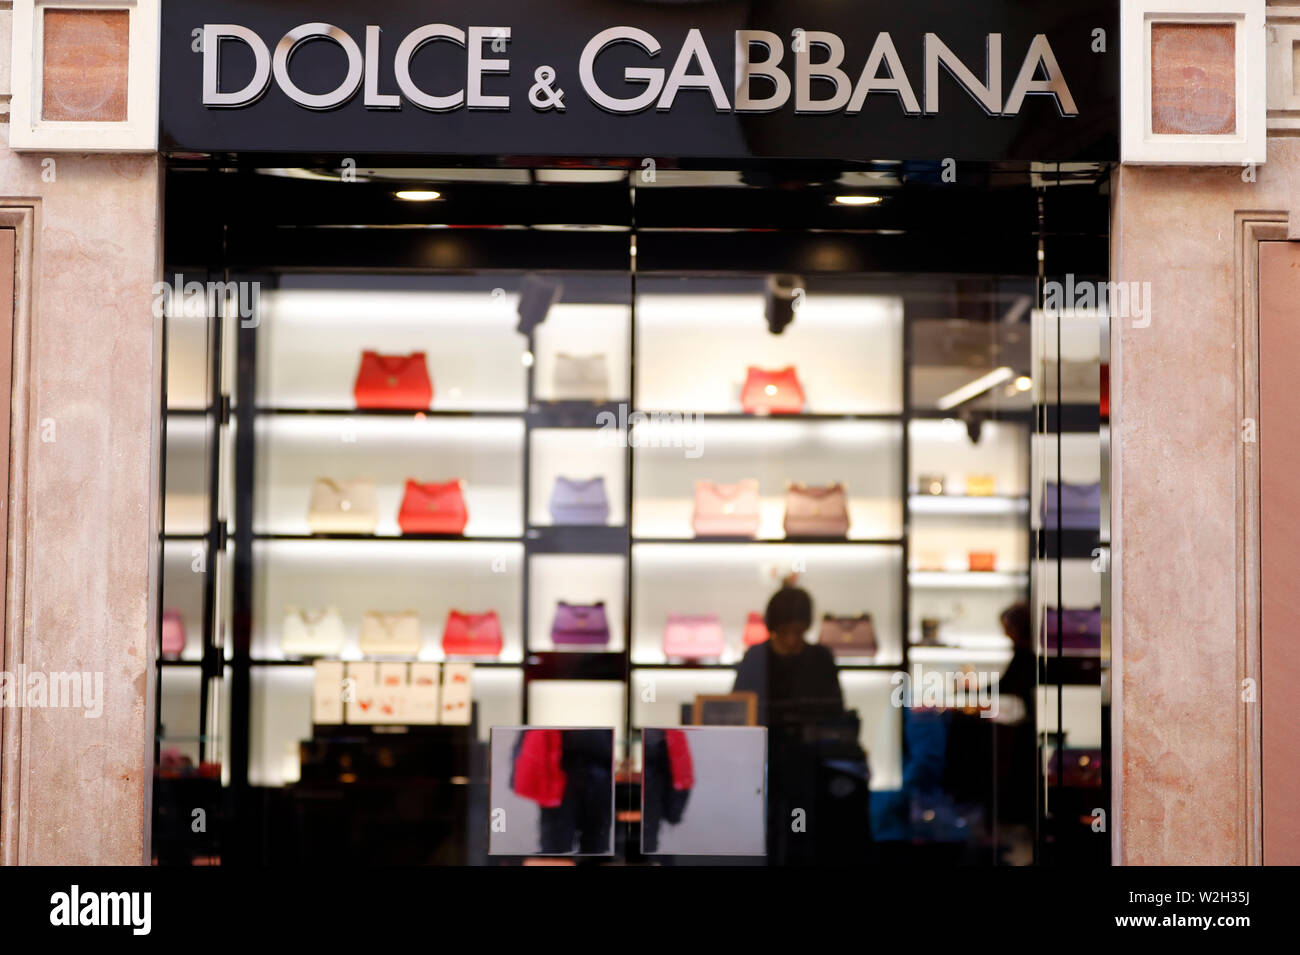 Dolce and Gabbana  boutique window display.  Verona. Italy. - Stock Image